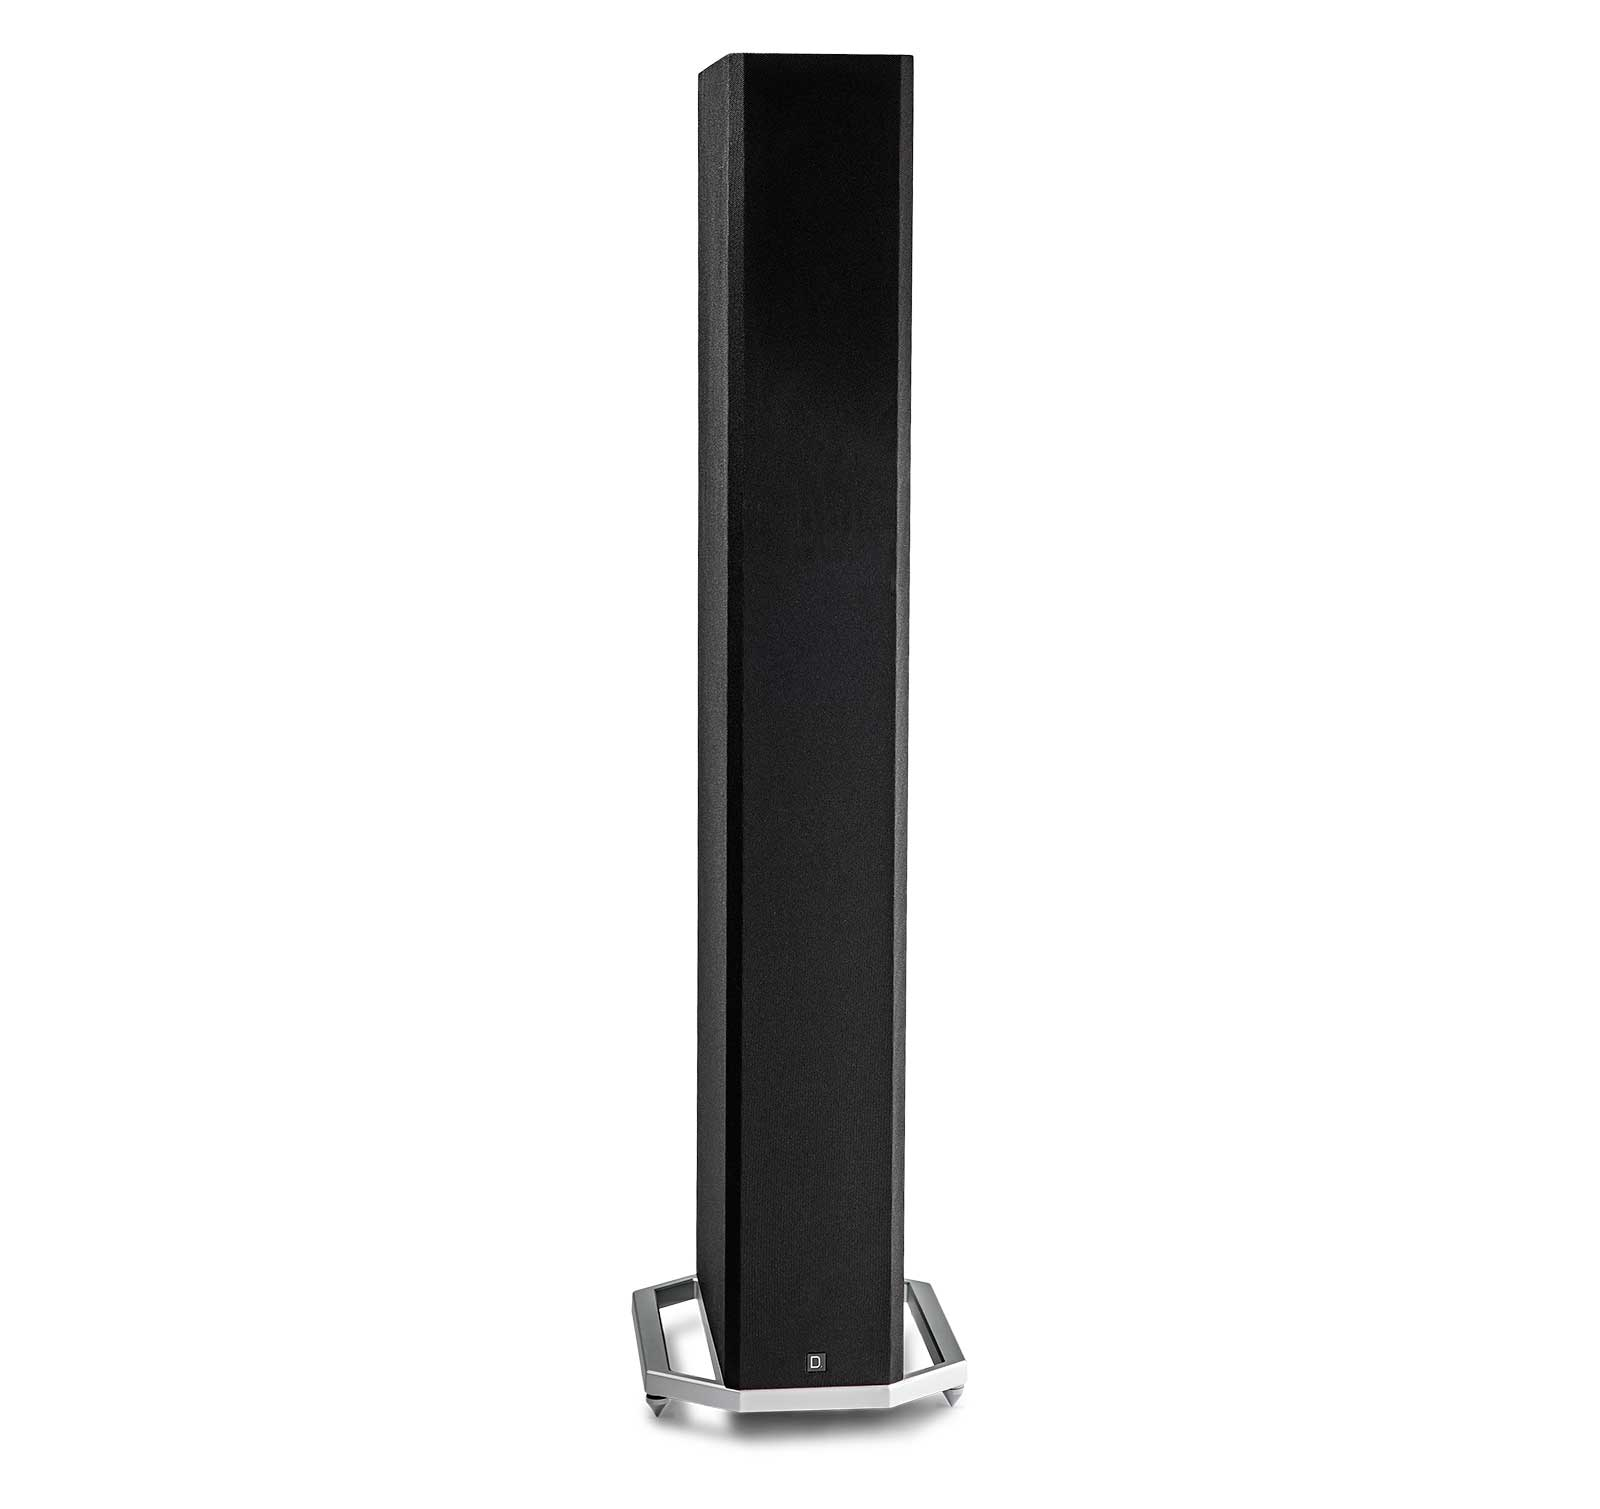 Image of the BP9060 Tower Speaker